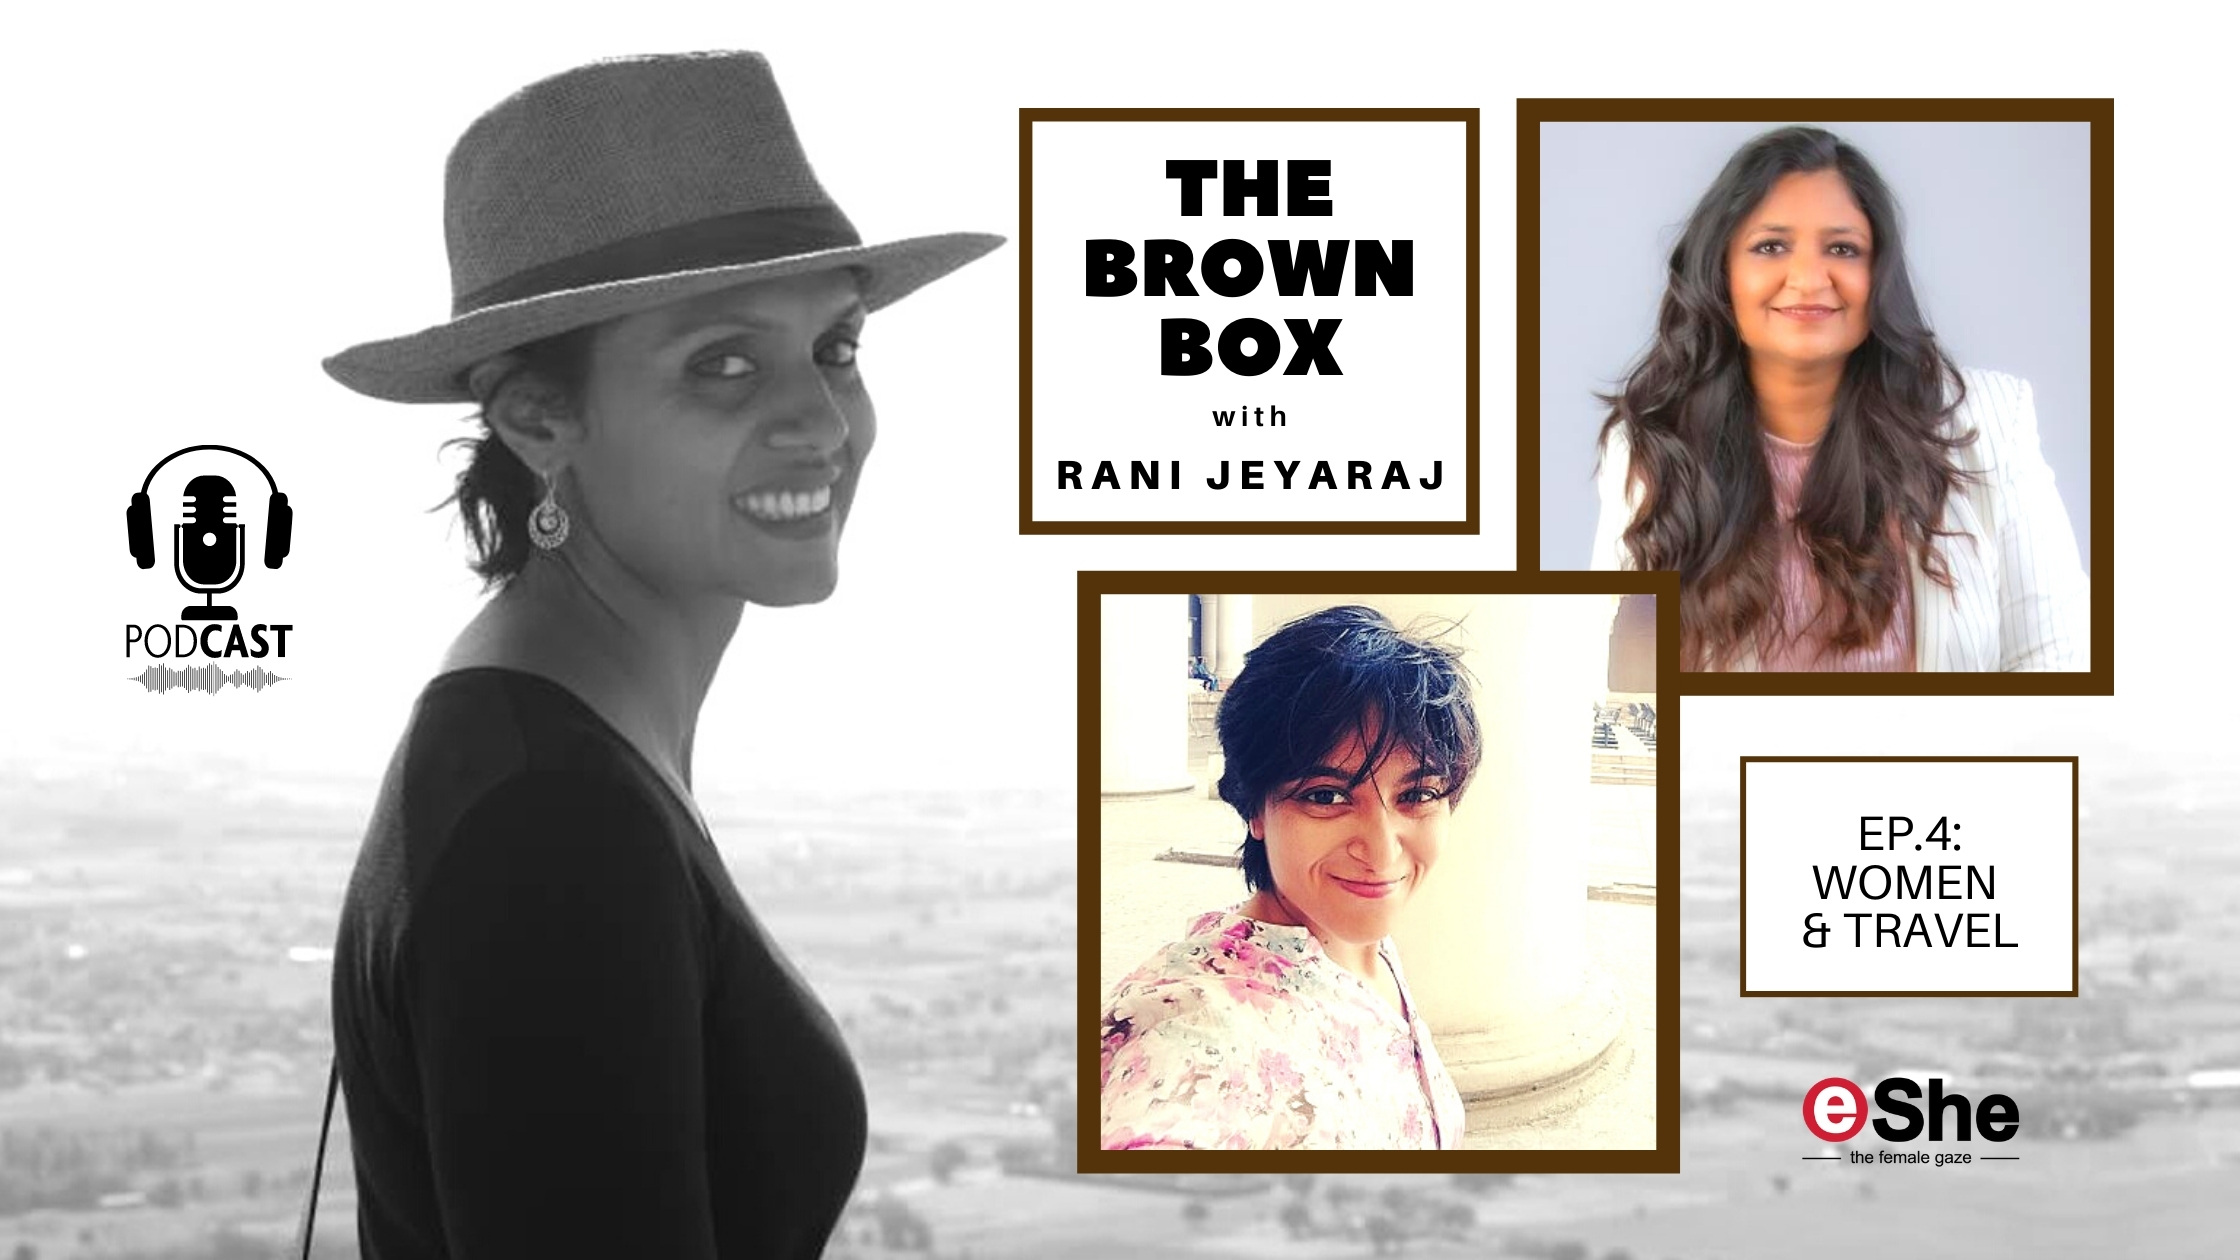 Ritu Goyal Harish and Smitha Murthy on Travel and Personal Growth: 'The Brown Box' ep.4